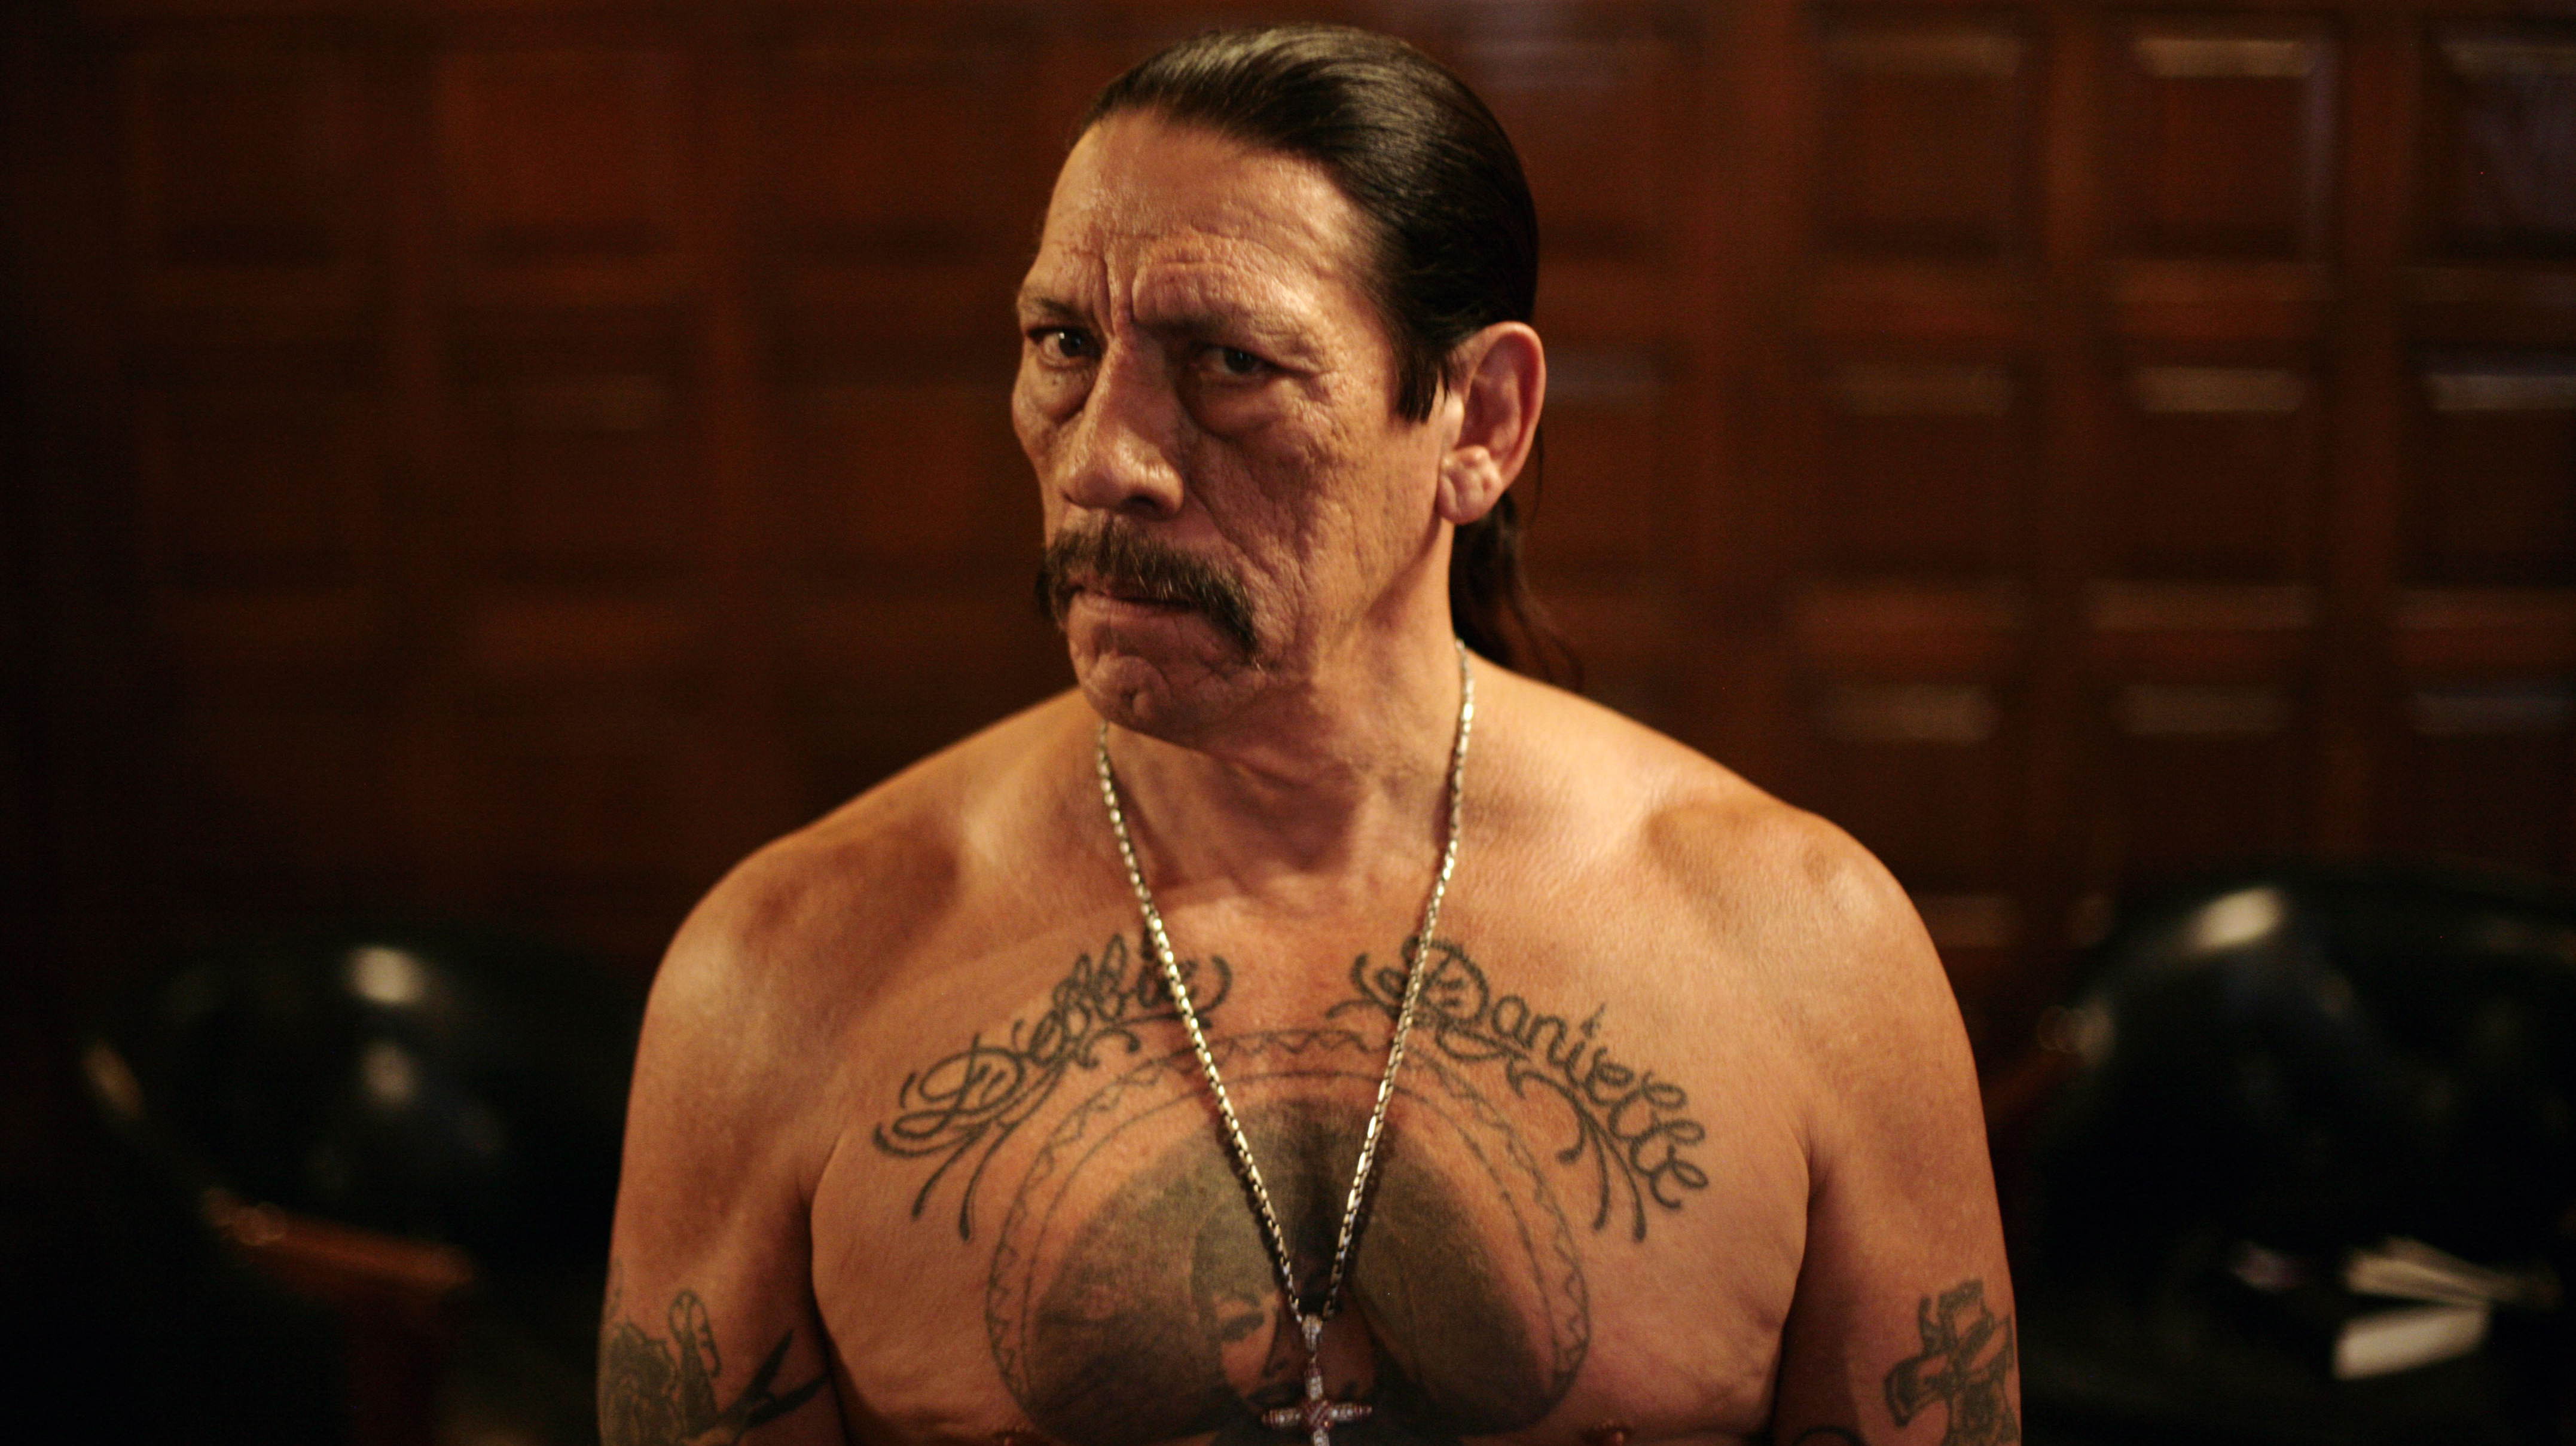 Danny Trejo: photo, biography, filmography and best films with the actor 9